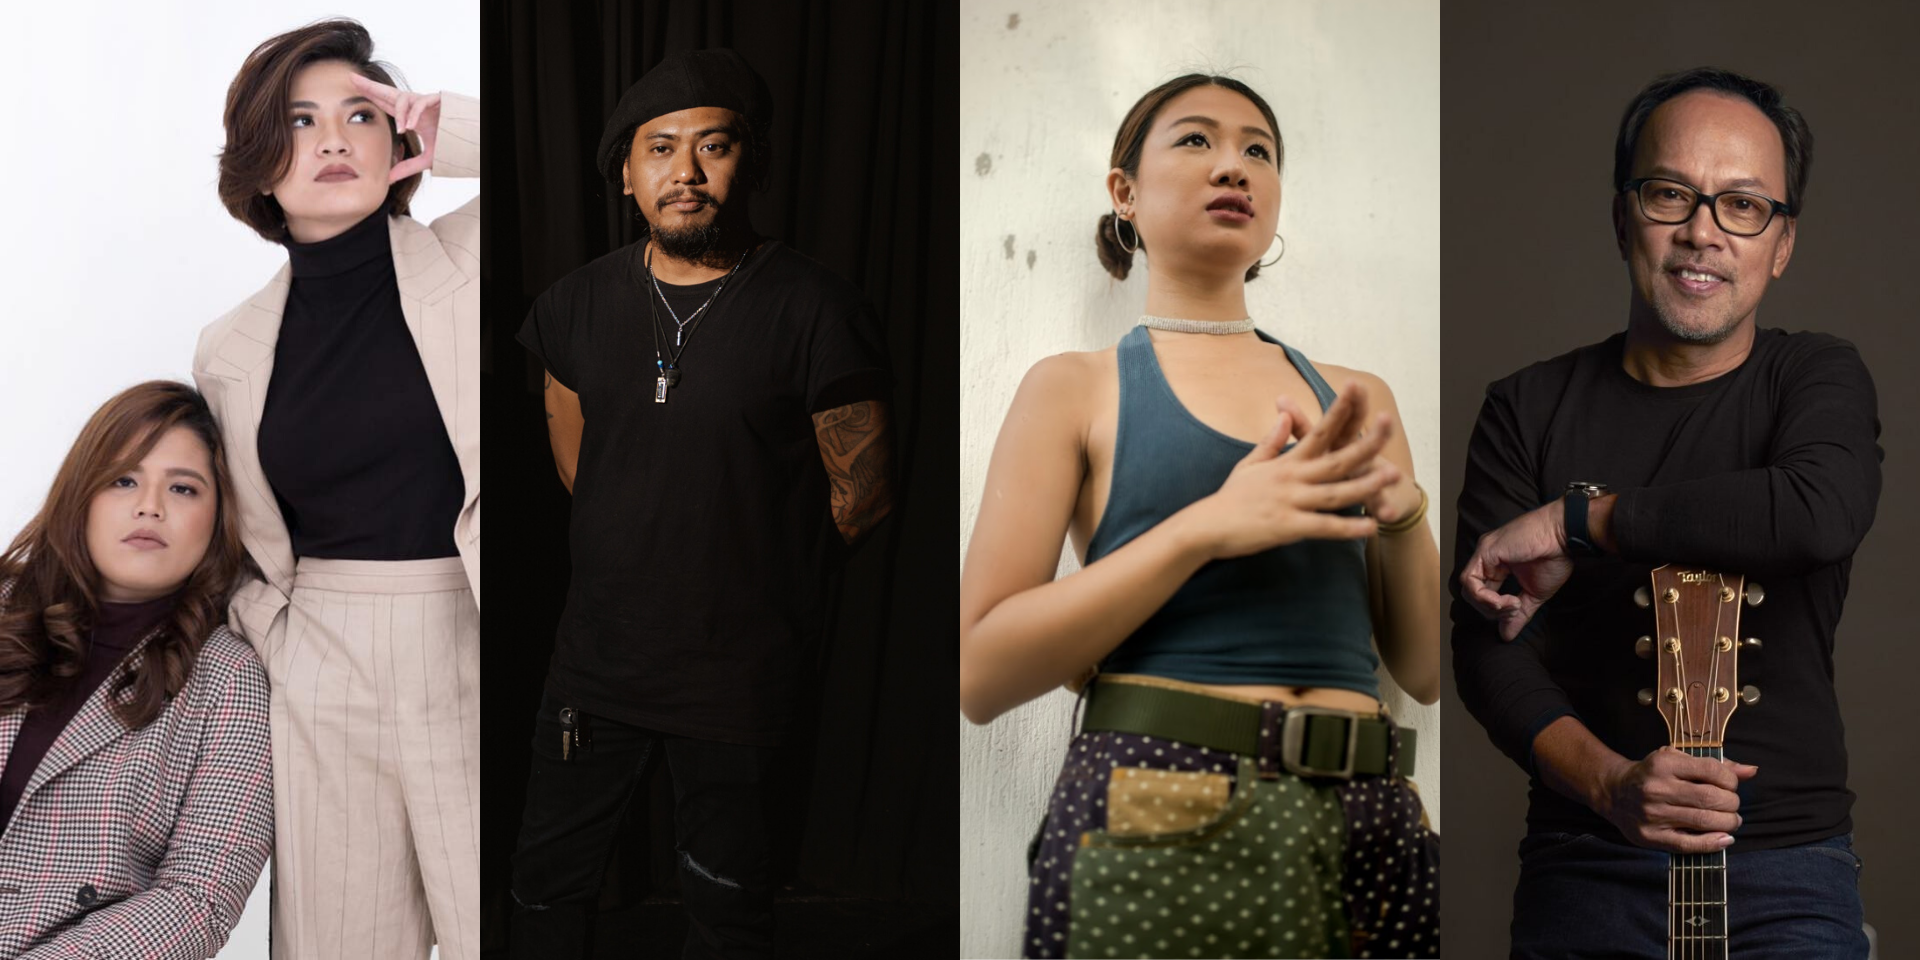 Steve Badiola, Noel Cabangon and Leanne and Naara, August Wahh,  and more release new music – listen